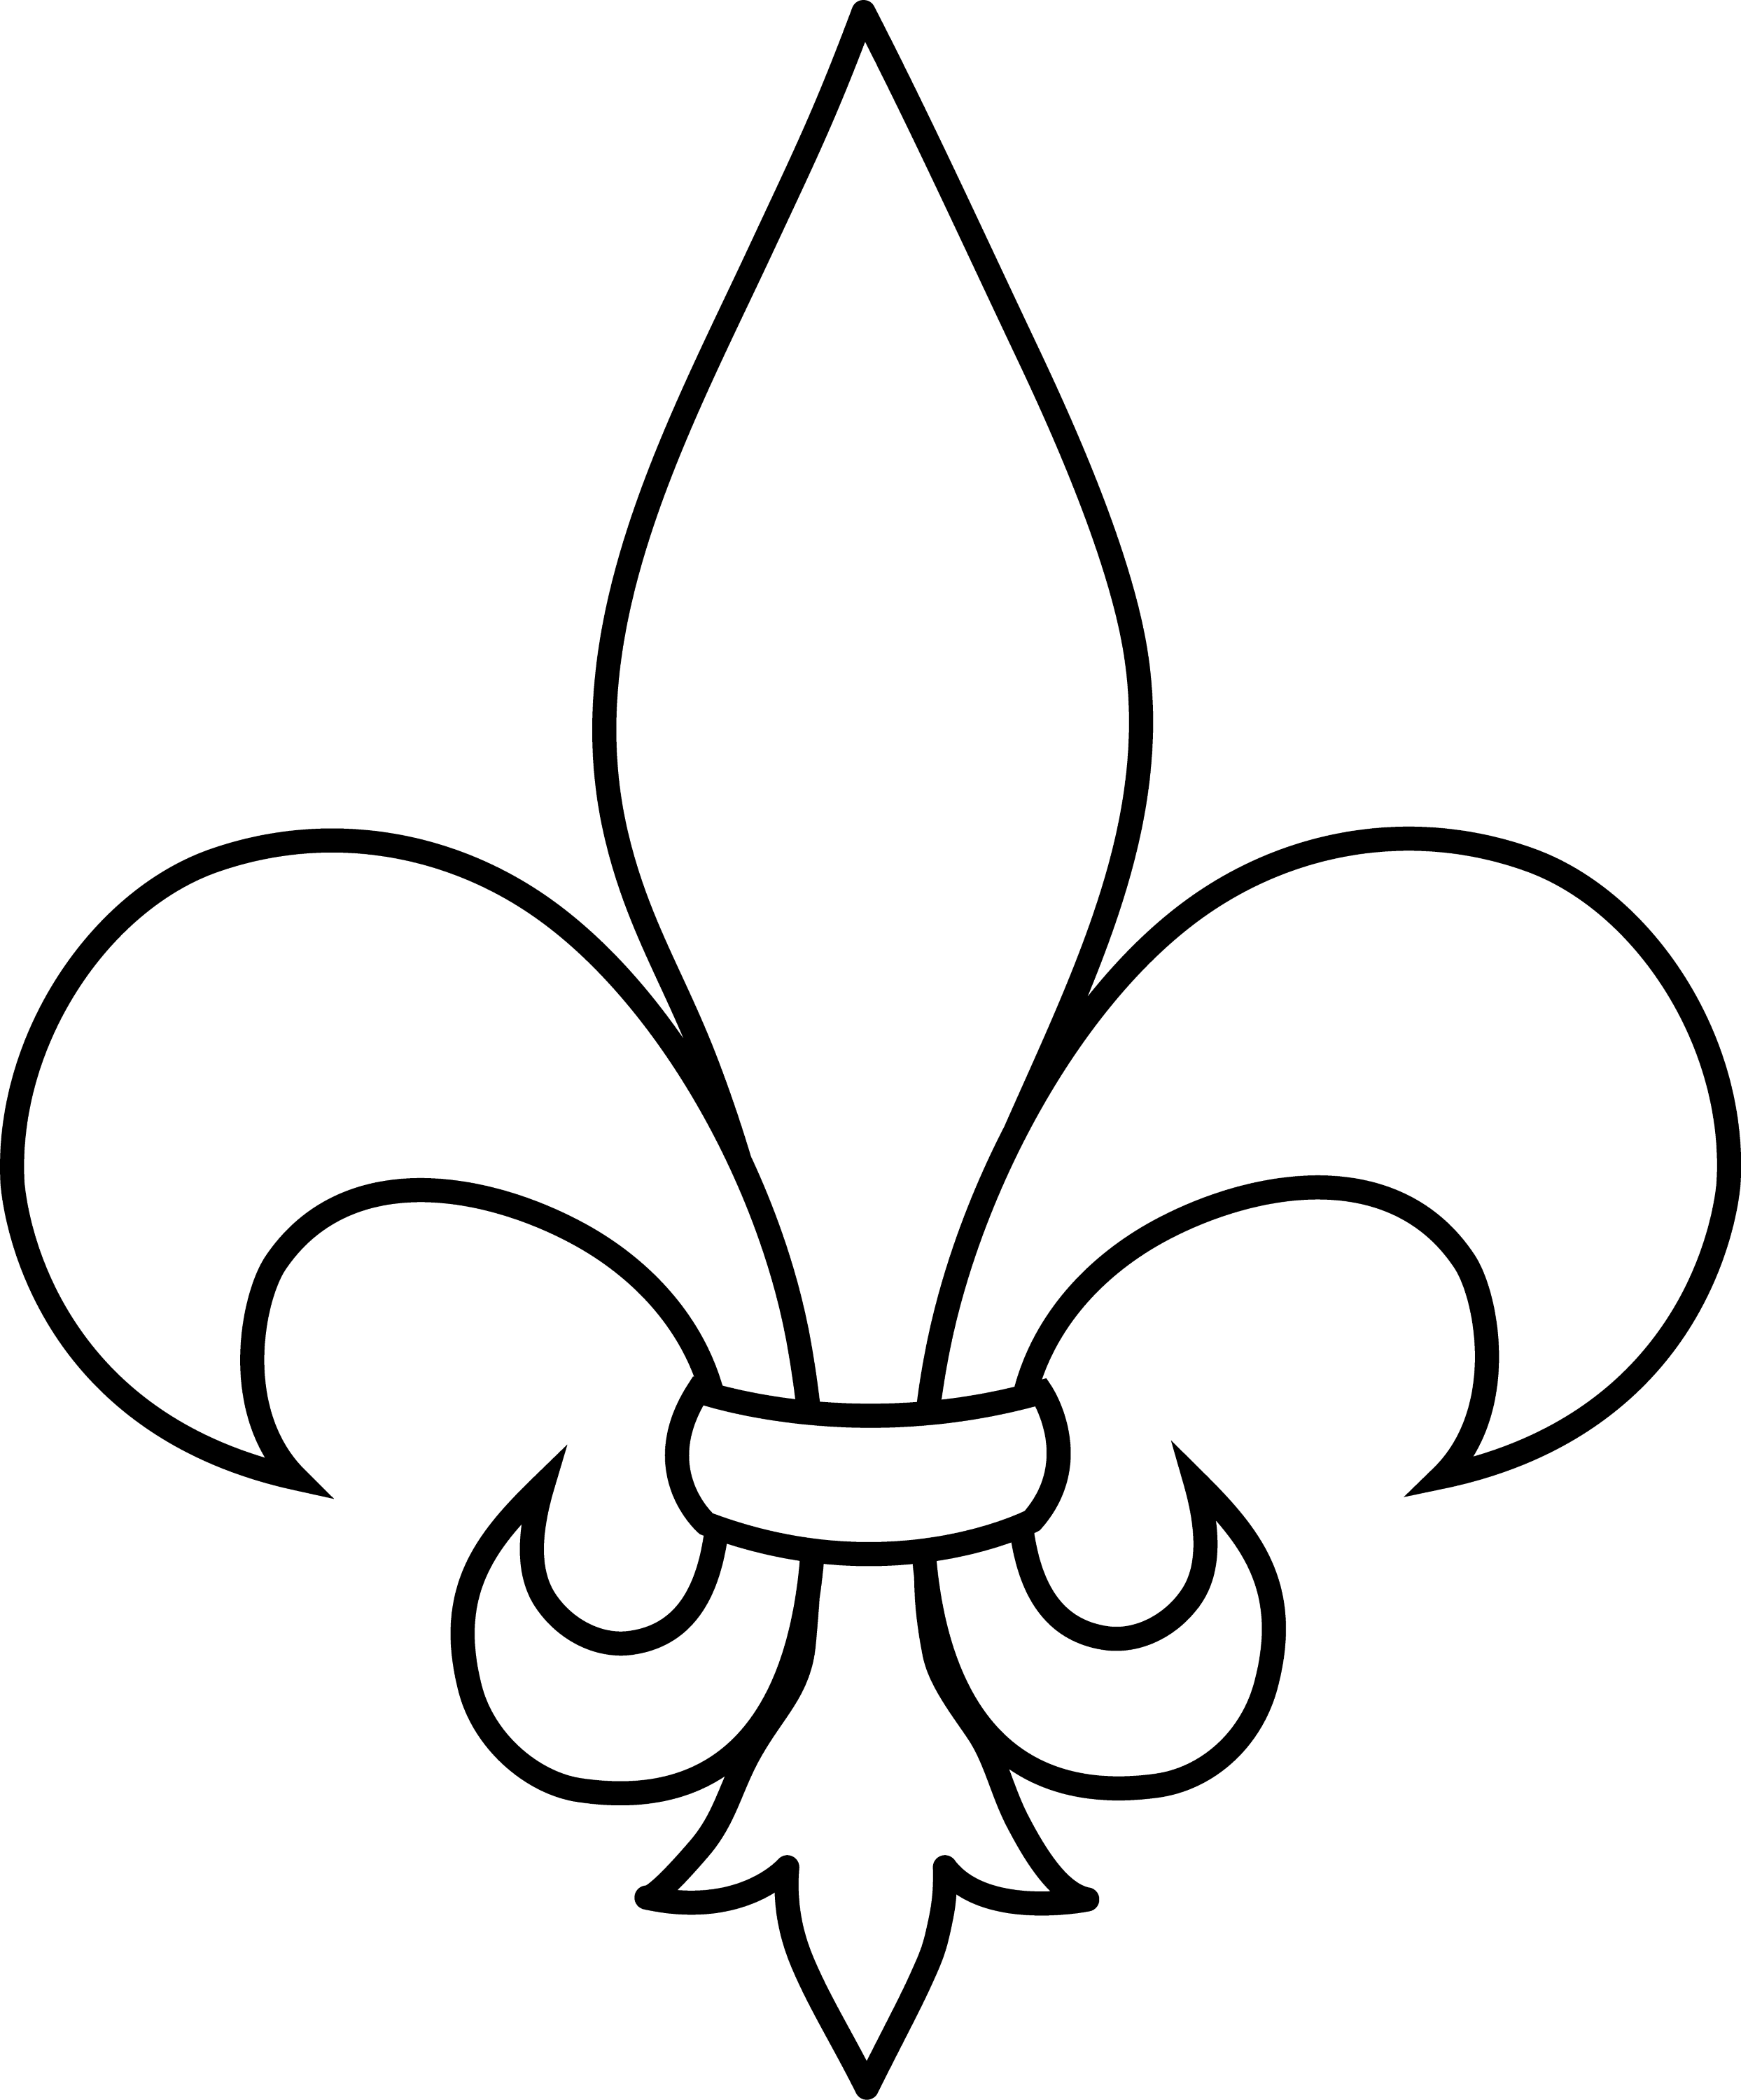 Fleur De Lis Black and White Lineart